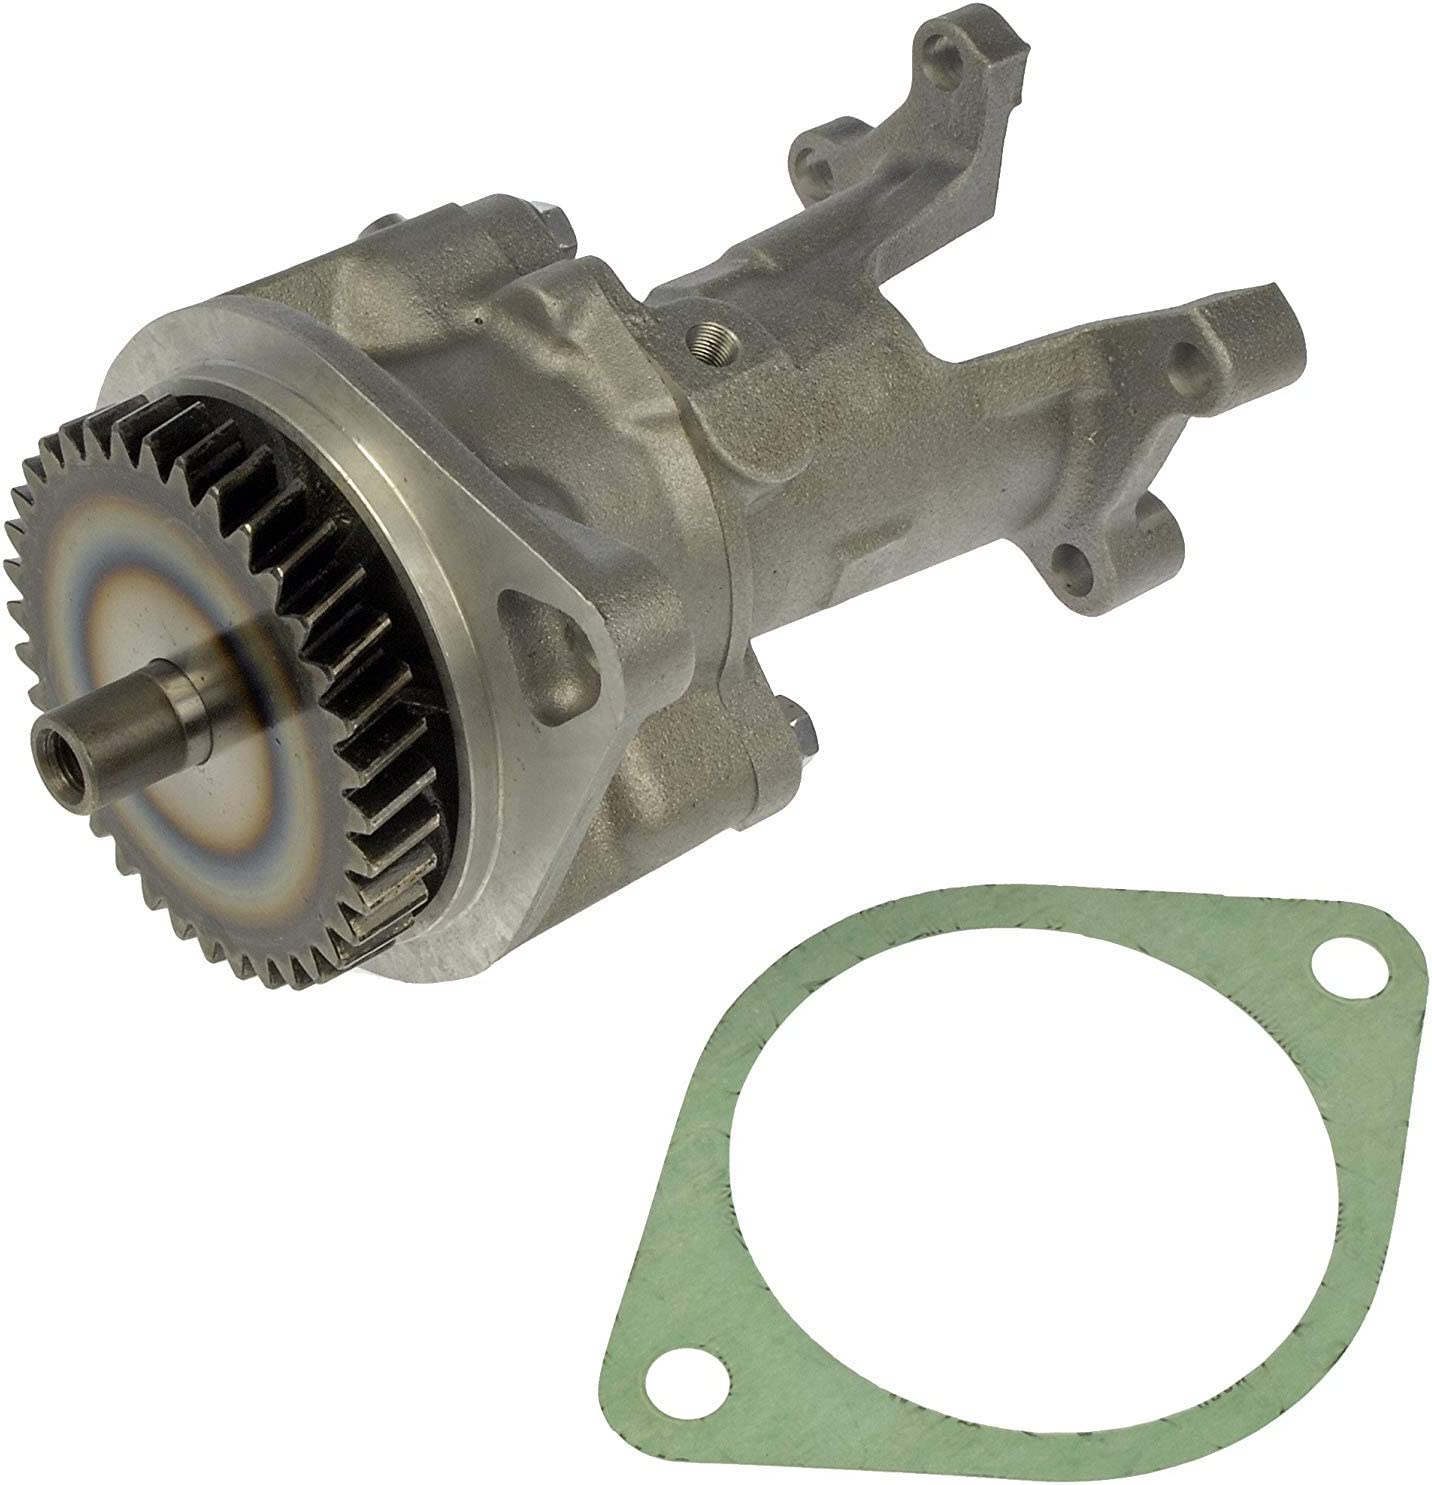 APDTY 015921 Gear Driven Mechanical Vacuum Pump Compatible With 1994-2002 Dodge Ram 2500 3500 Pickup w/Cummins 5.9L Diesel Engine (Replaces 3937193RX, 4746706, 4874365, 5019734AA, R5019734AA)